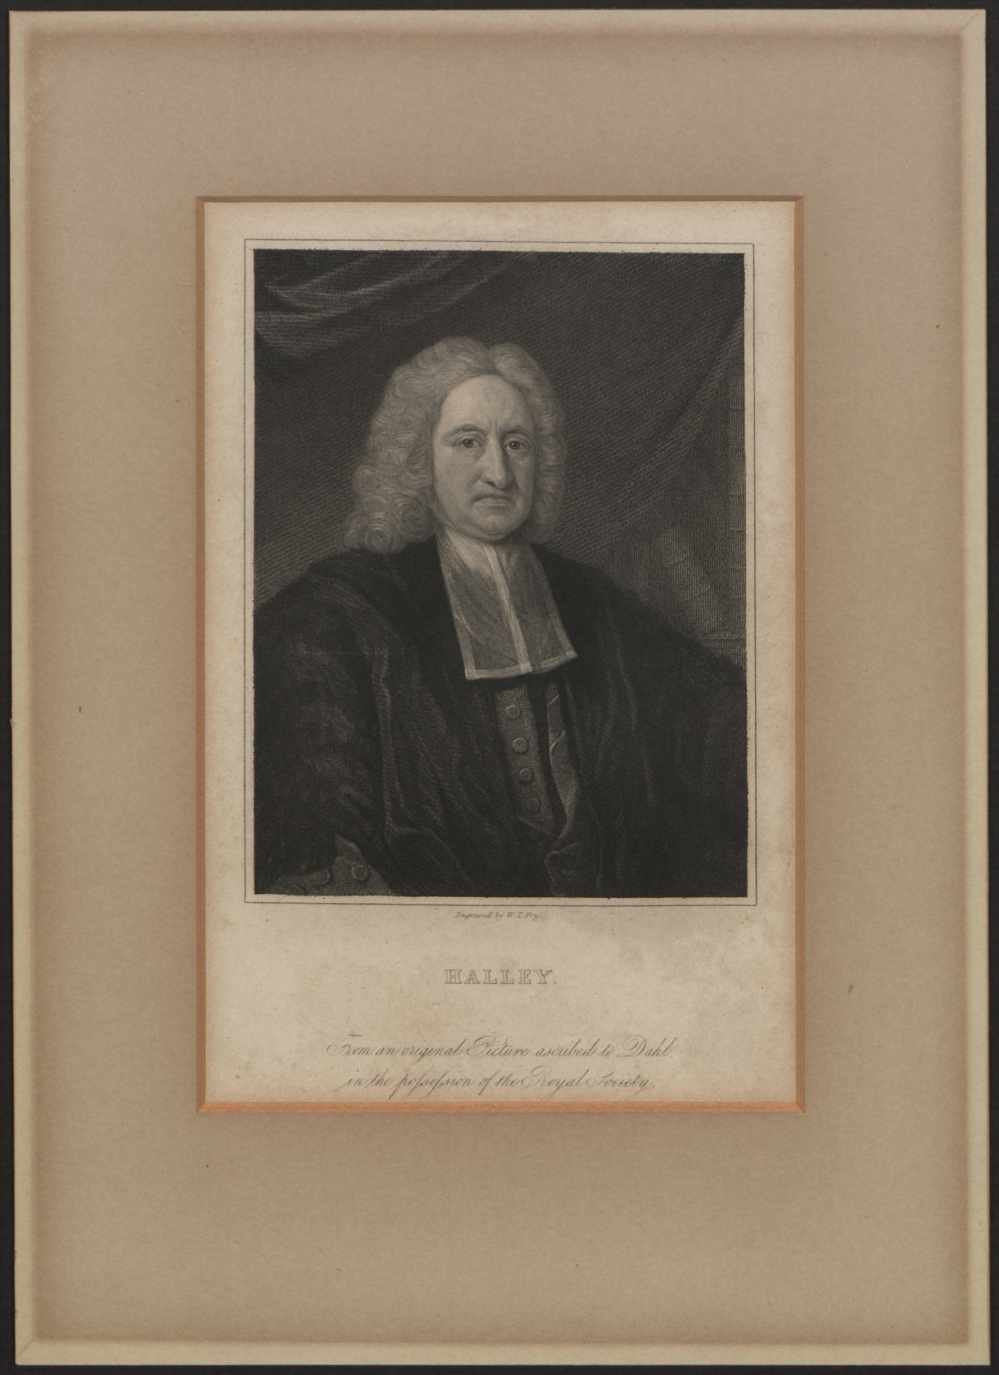 preview image for Print (Engraving) of Edmond Halley, with Separate Frame, by W. T. Fry, from the Royal Society Portrait, Early 19th Century